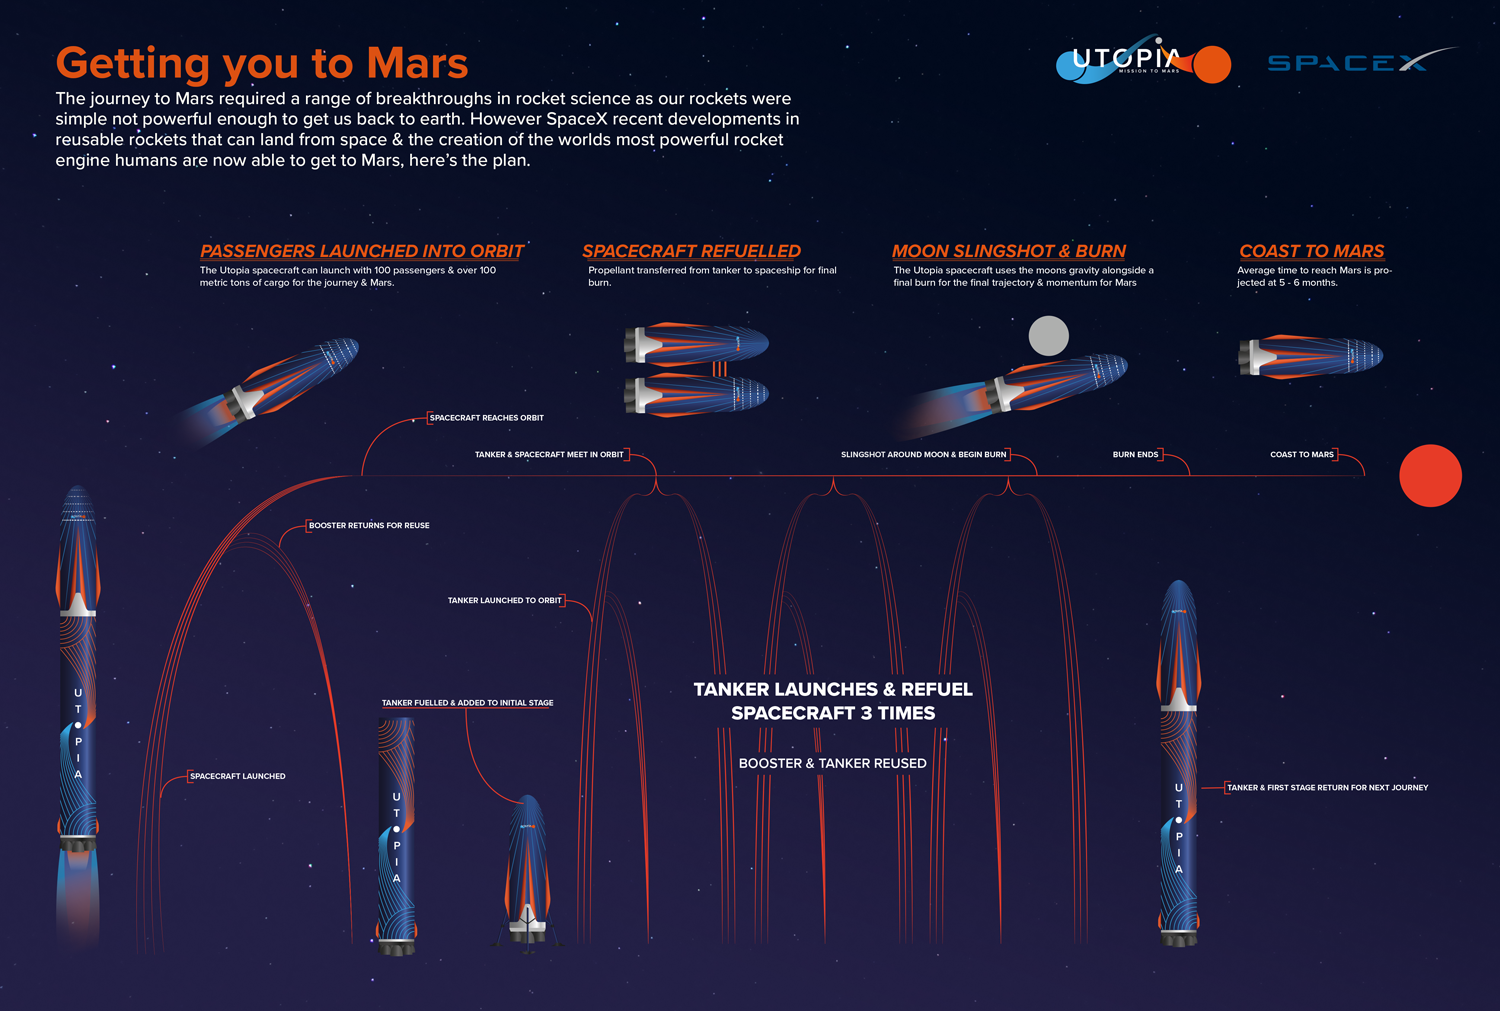 journey-to-mars-infographic.png